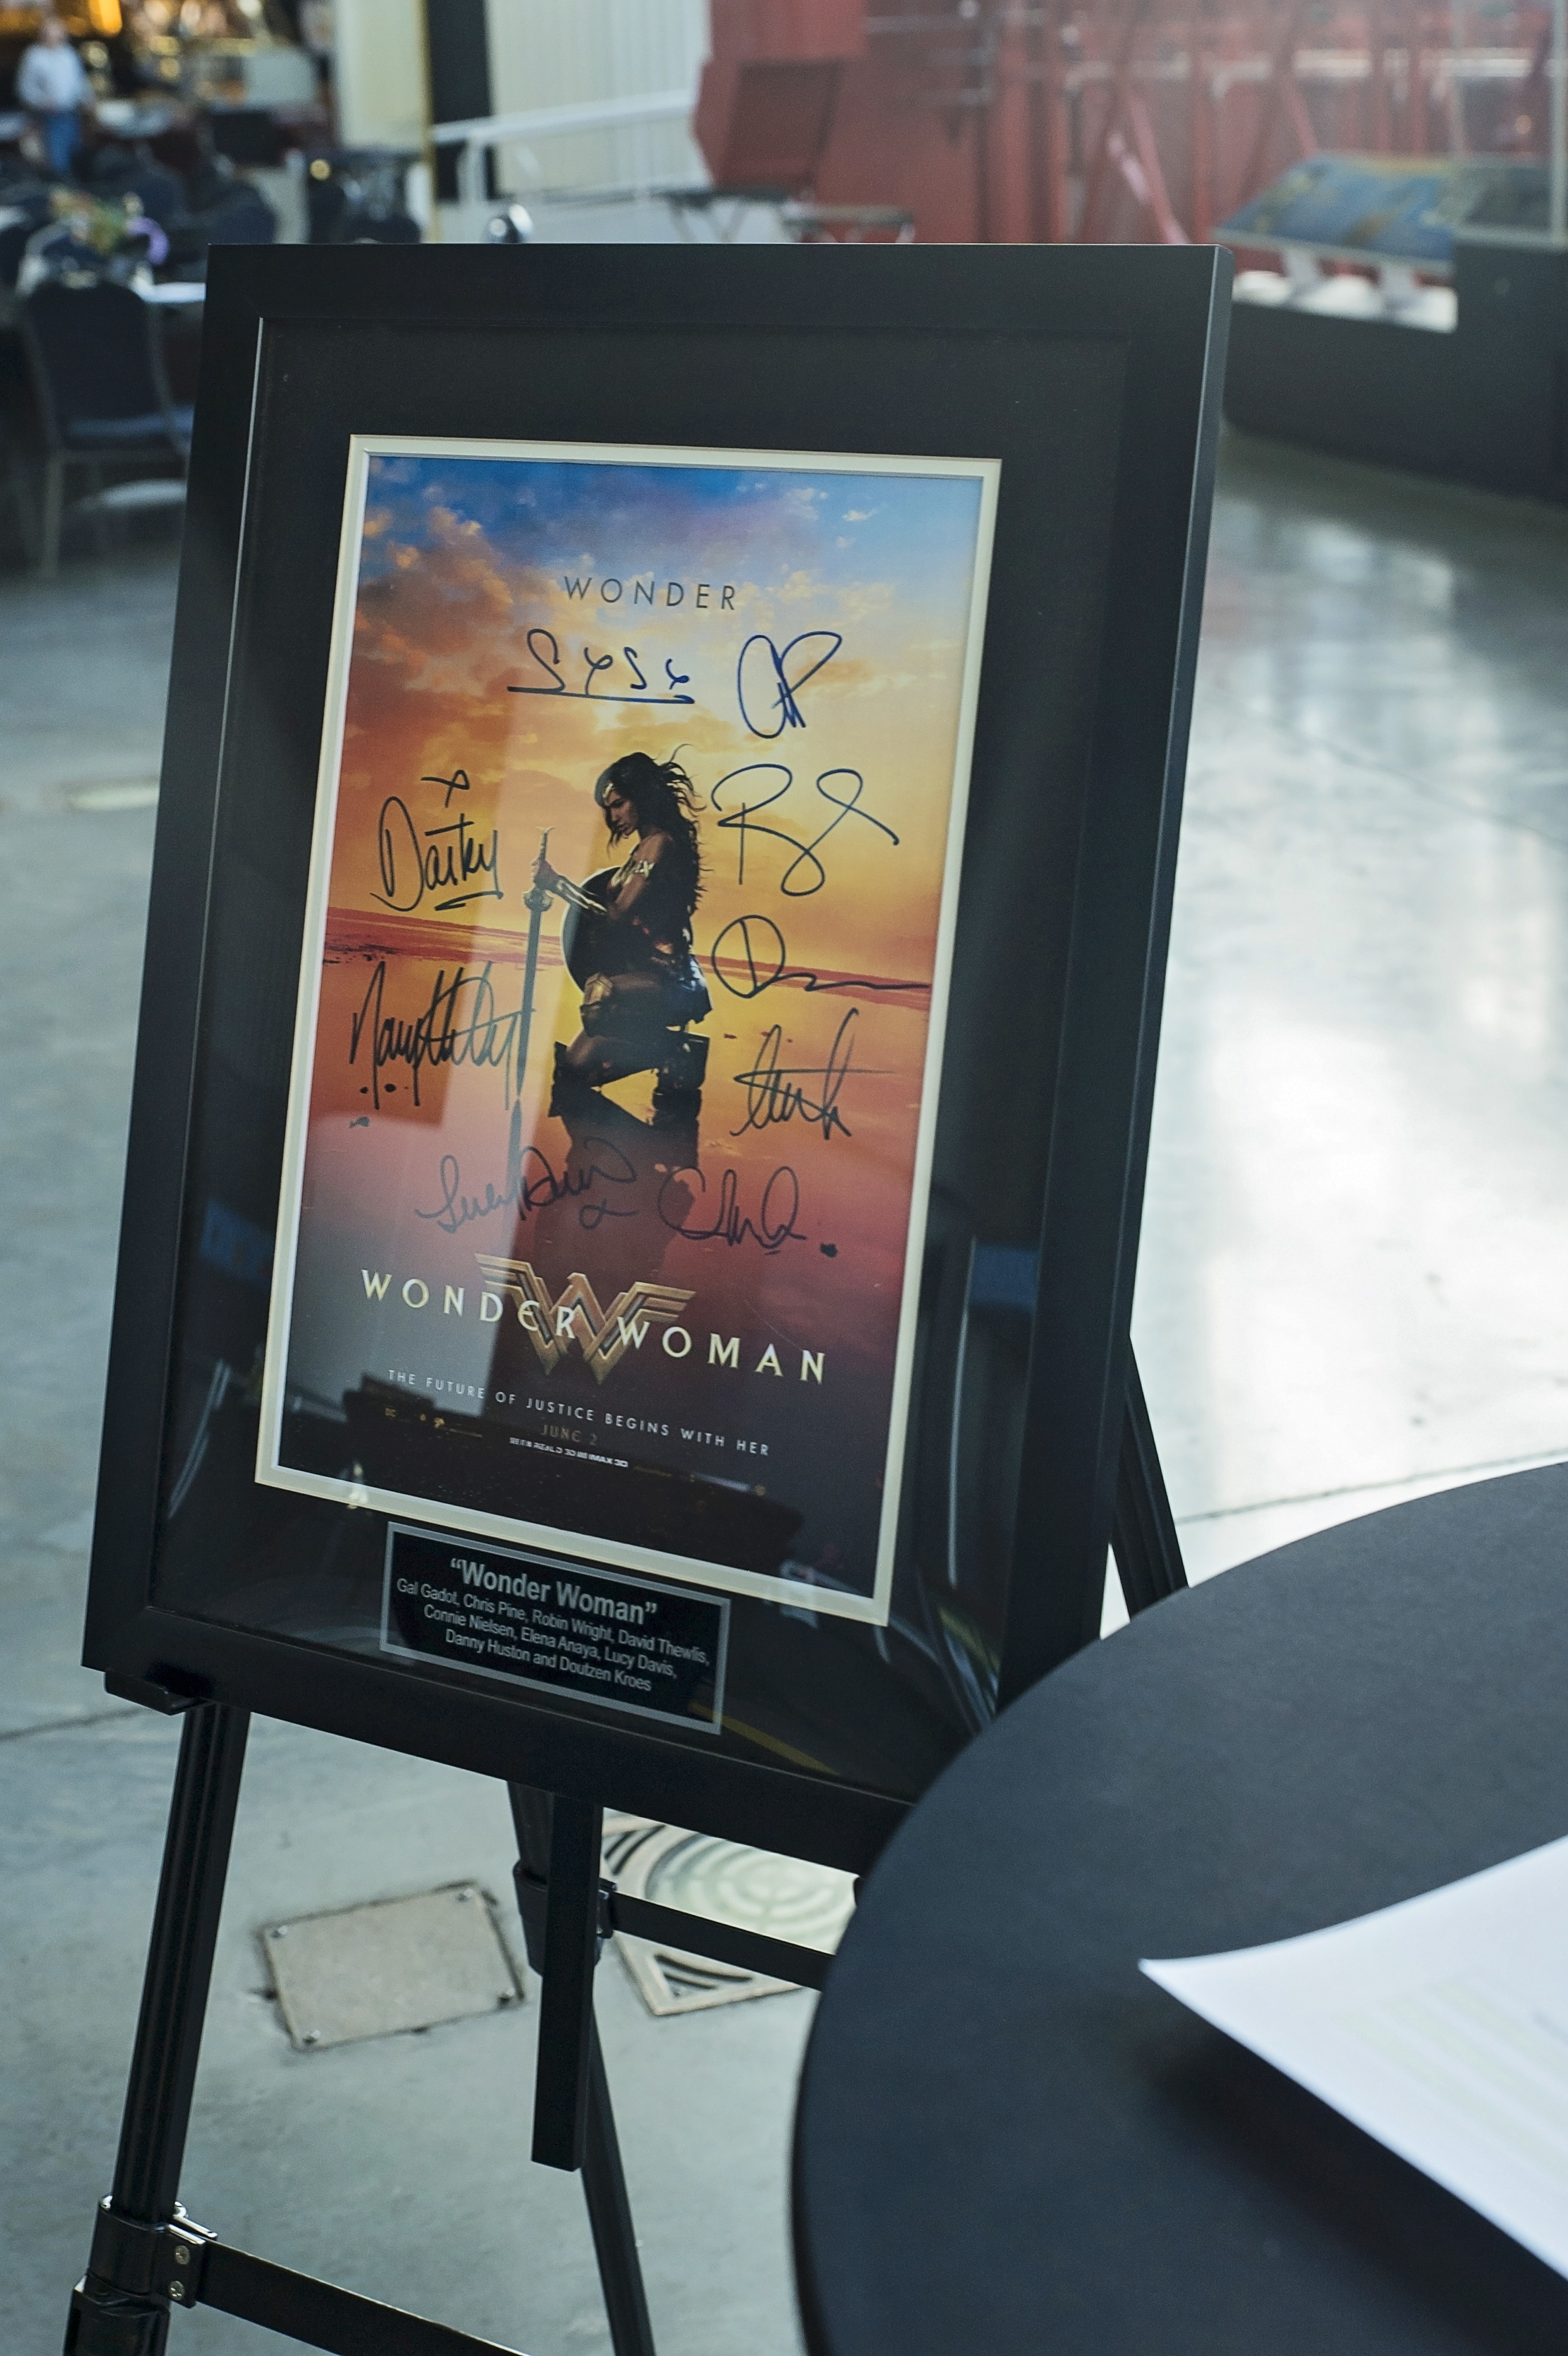 Auction Item: Wonder Woman Movie Poster